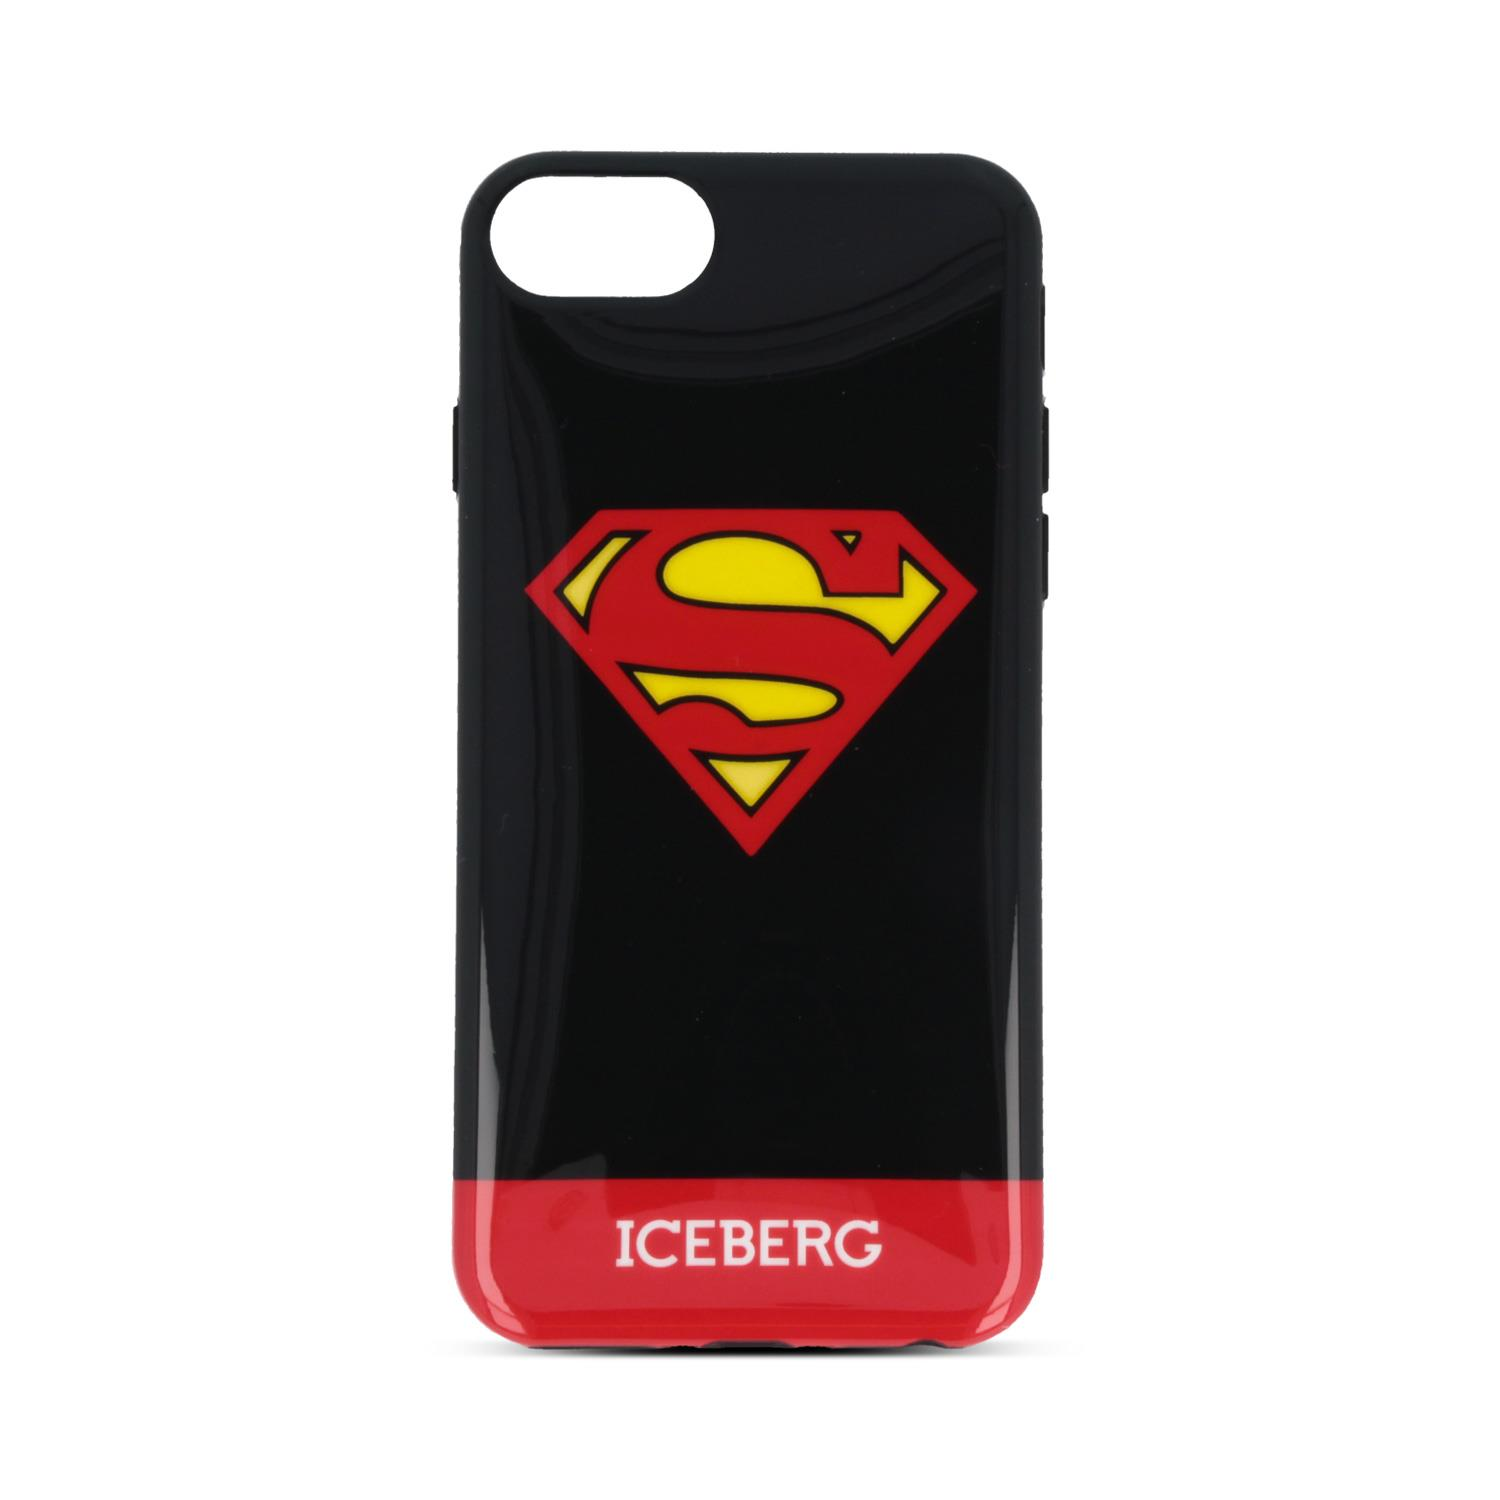 ICEBERG CUSTODIA ICEBERG SUPERMAN X IPHONE 6/6S